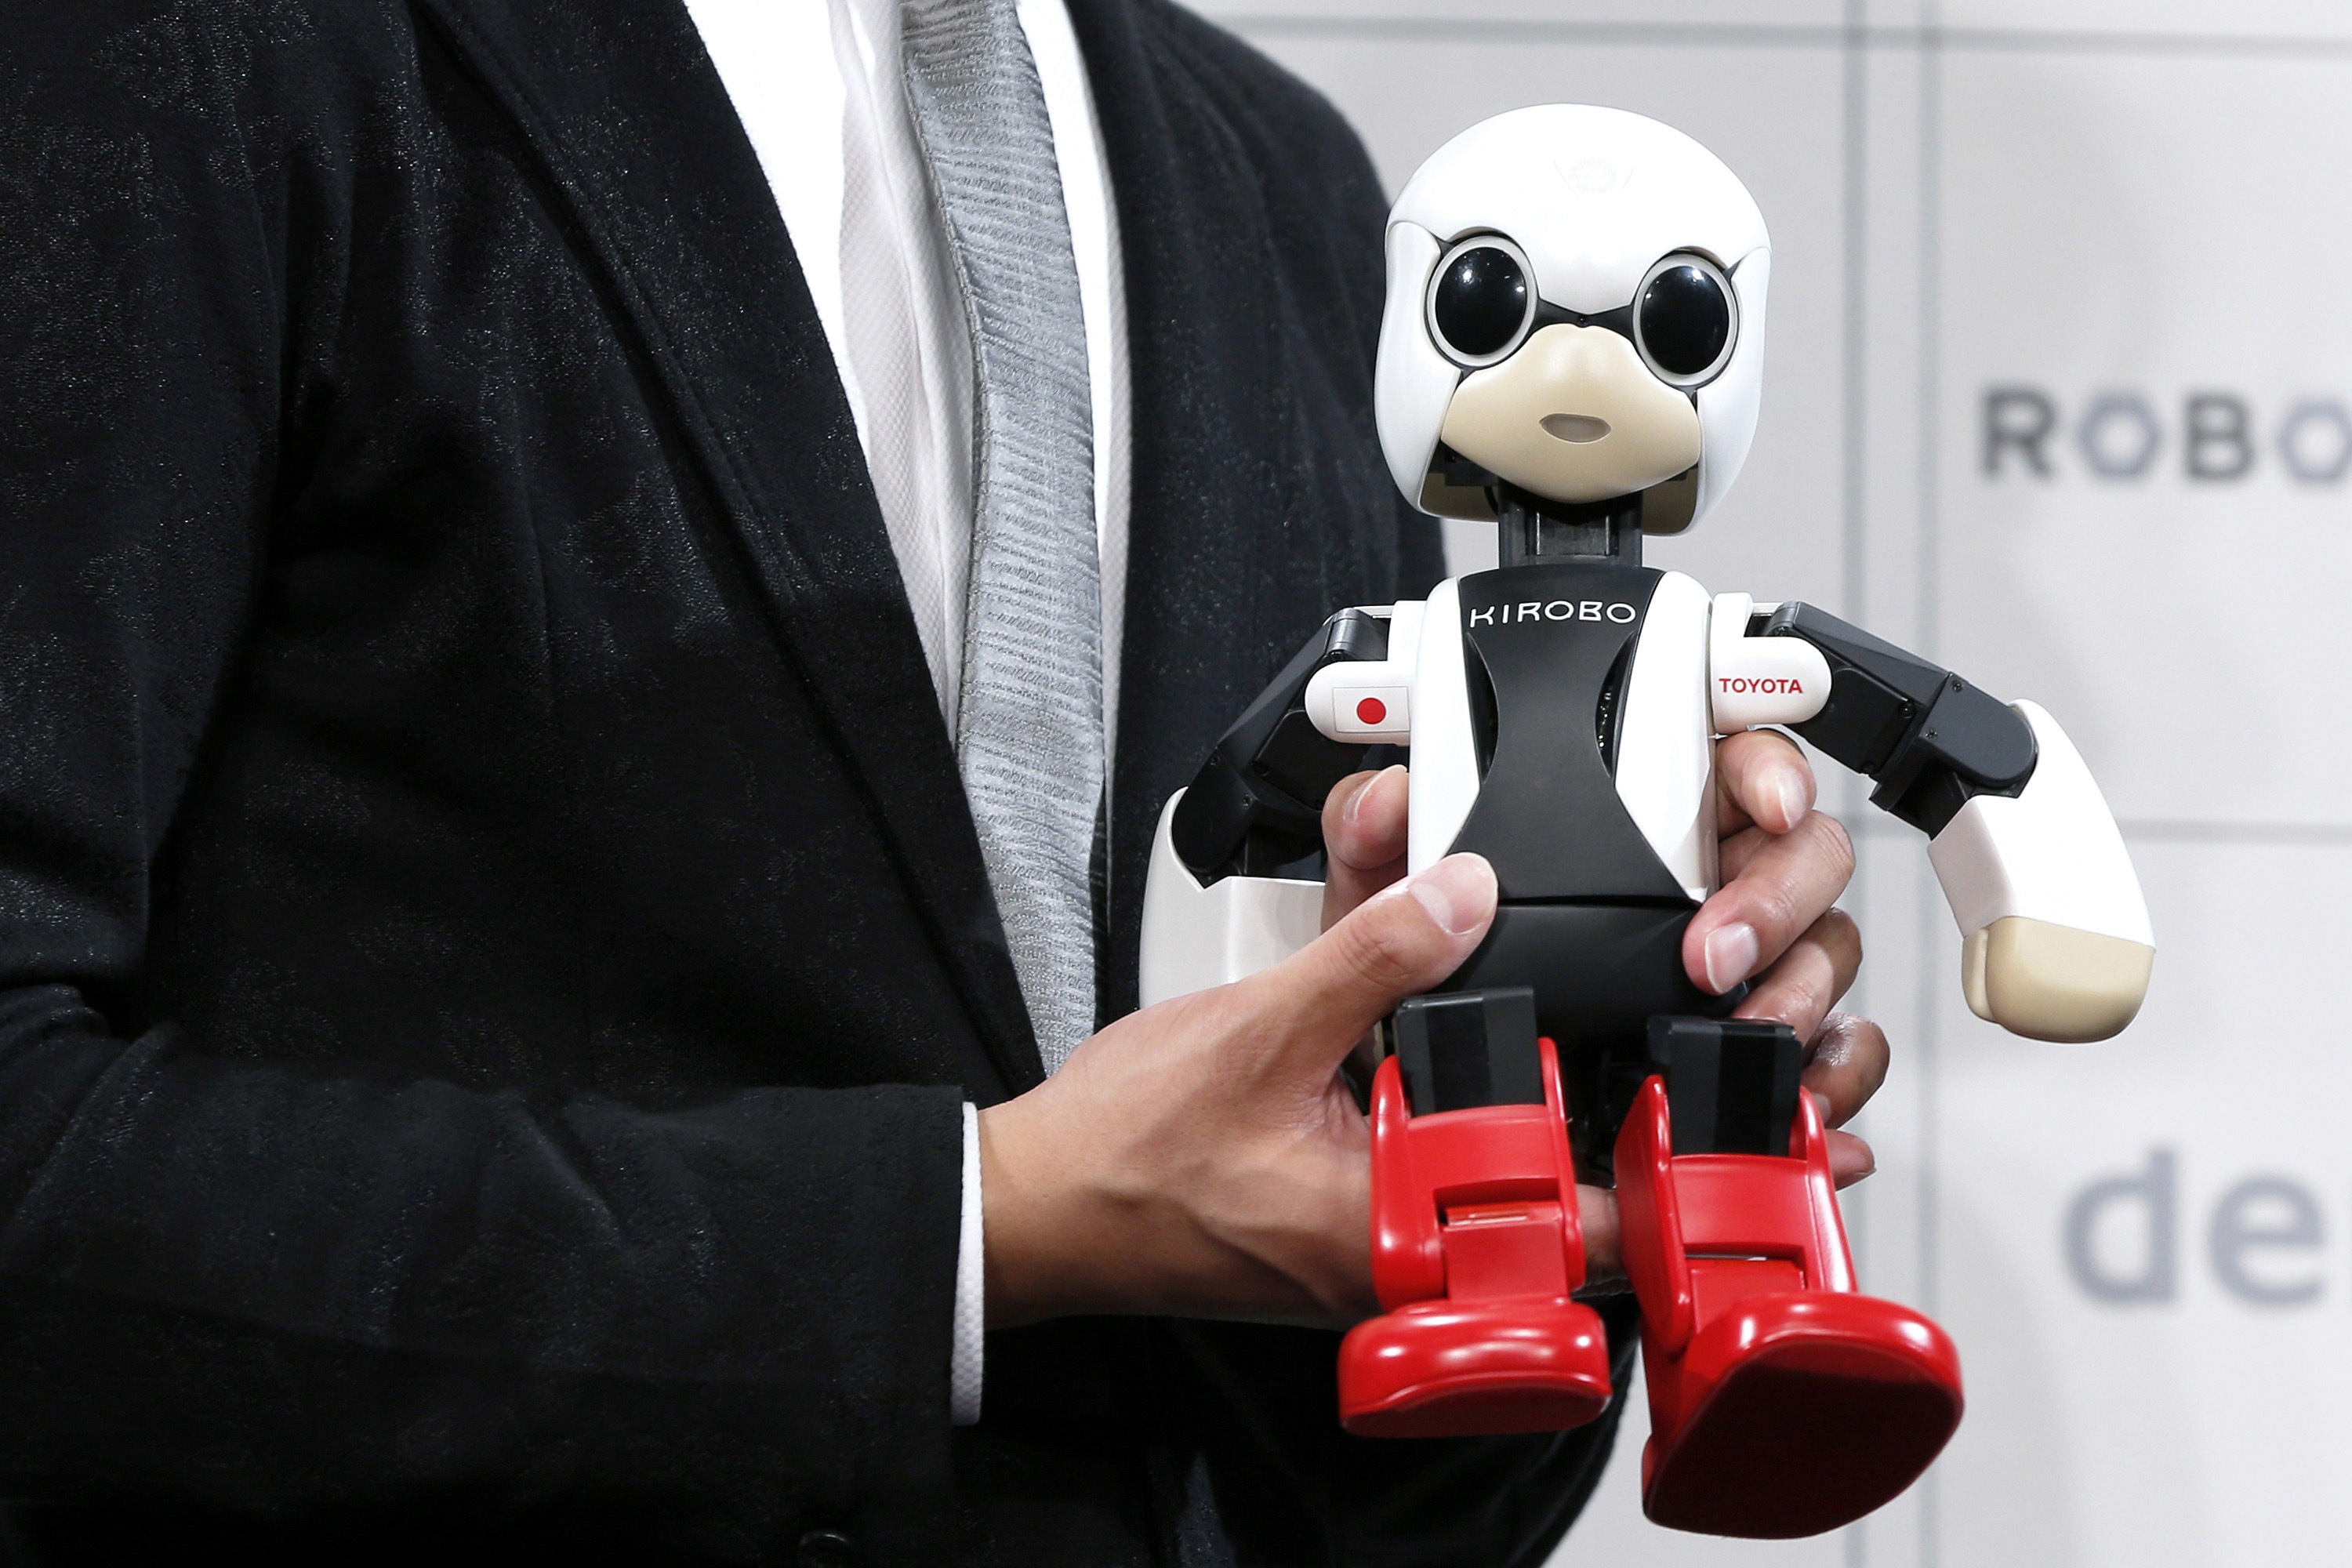 Toyota Holds News Conference On Humanoid Robots